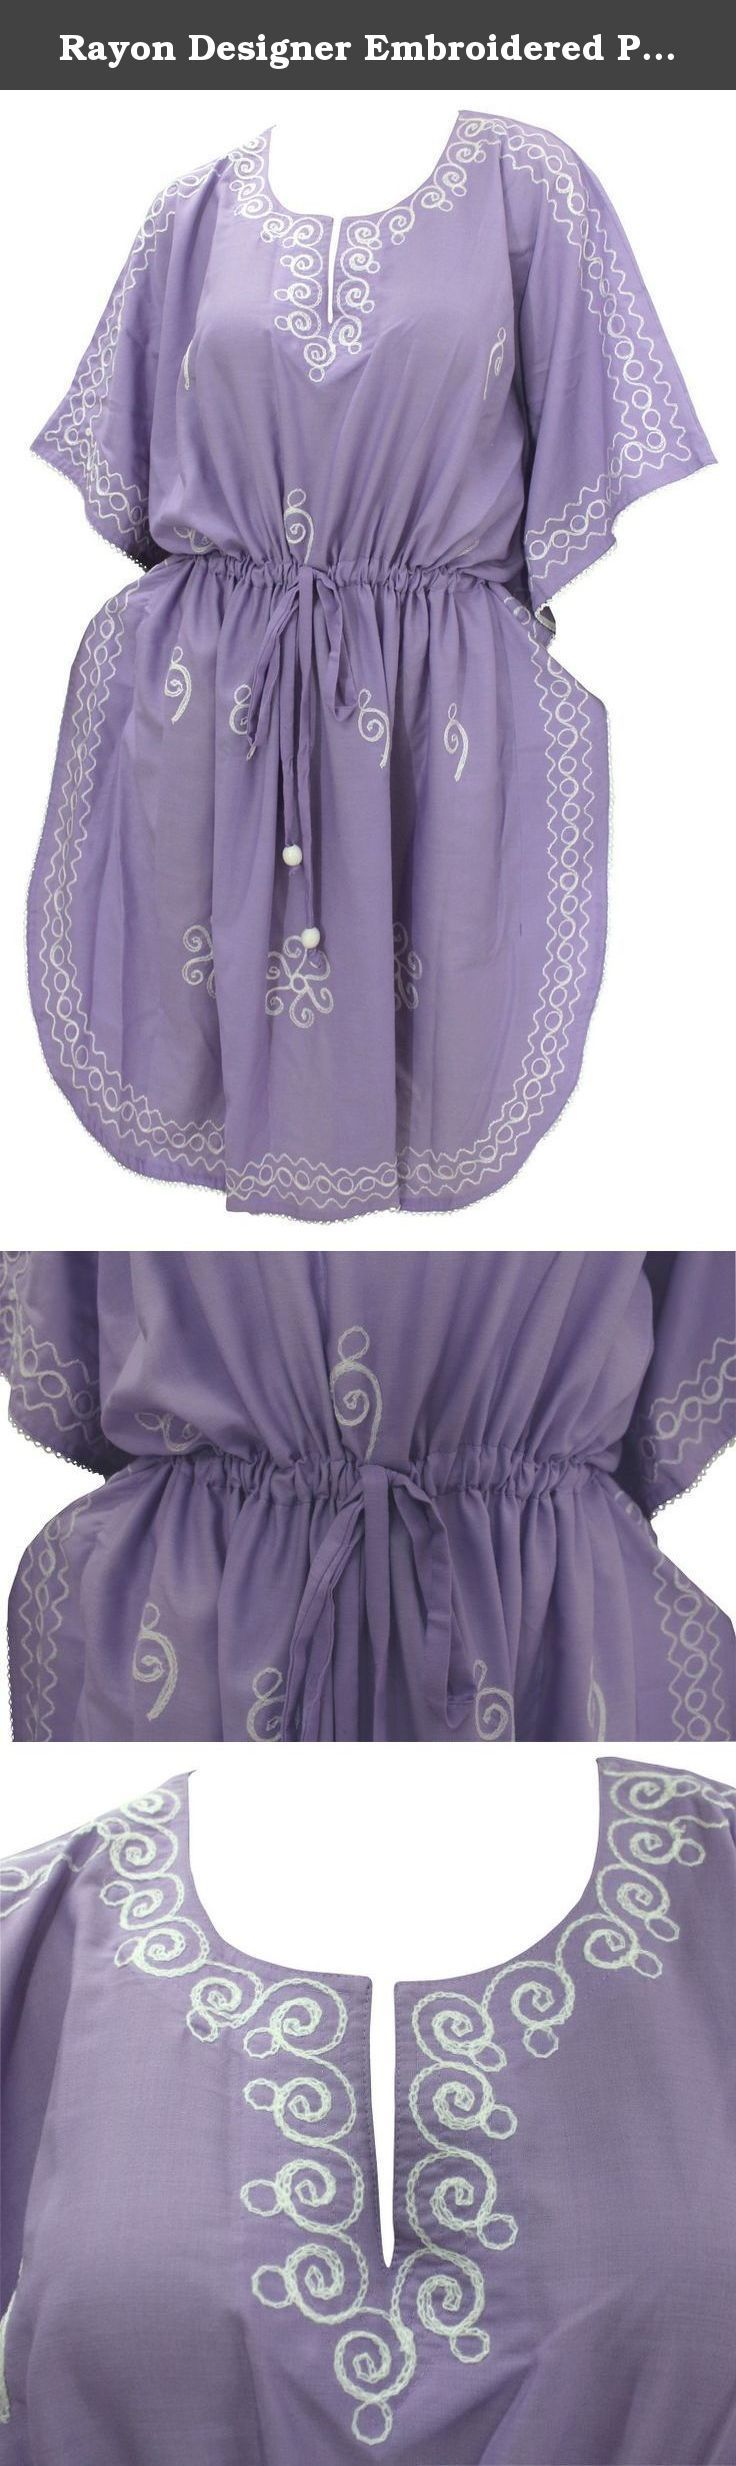 "Rayon Designer Embroidered Plus Size Beach /Nightwear Cover Up Caftan Violet Valentines Day Gifts 2017. Description:- ==> Welcome to LA LEELA ==> Enjoy Beach, Breeze and Nature with La Leela's ""VIBRANT BEACH COLLECTION"" and stay calm and classy! . ==> Fabric : DELICATE DESIGNER EMBROIDERED LIGHTWEIGHT SMOOTH RAYON FABRIC US Size : From Regular 14 (L) TO Plus Size 28W (4X) ➤ UK SIZE : FROM REGULAR 14 (M) TO 30(XXXL) ➤ BUST : 56 Inches [ 142 cms ]➤ Length : 42 Inches [ 106 cms ]…"